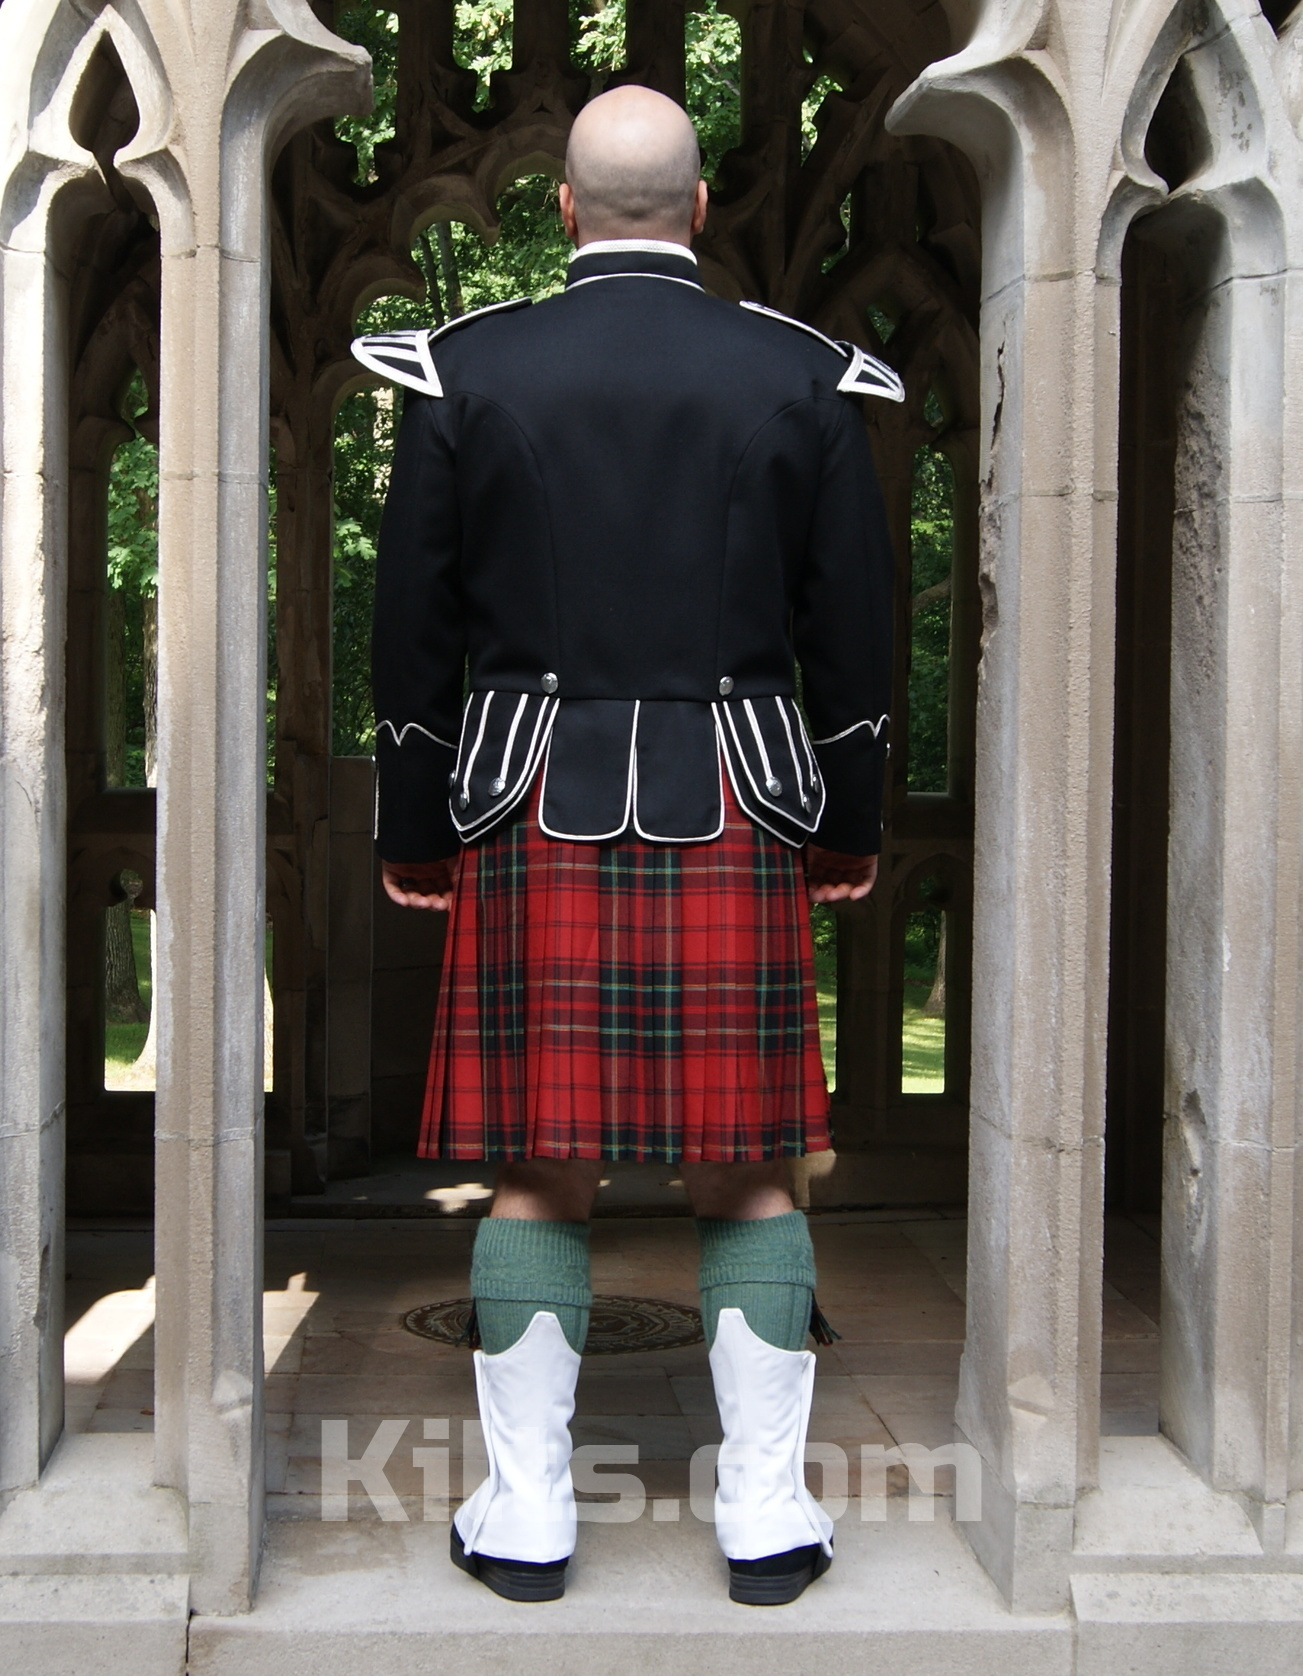 Here is our Military Kilt Doublet for sale.